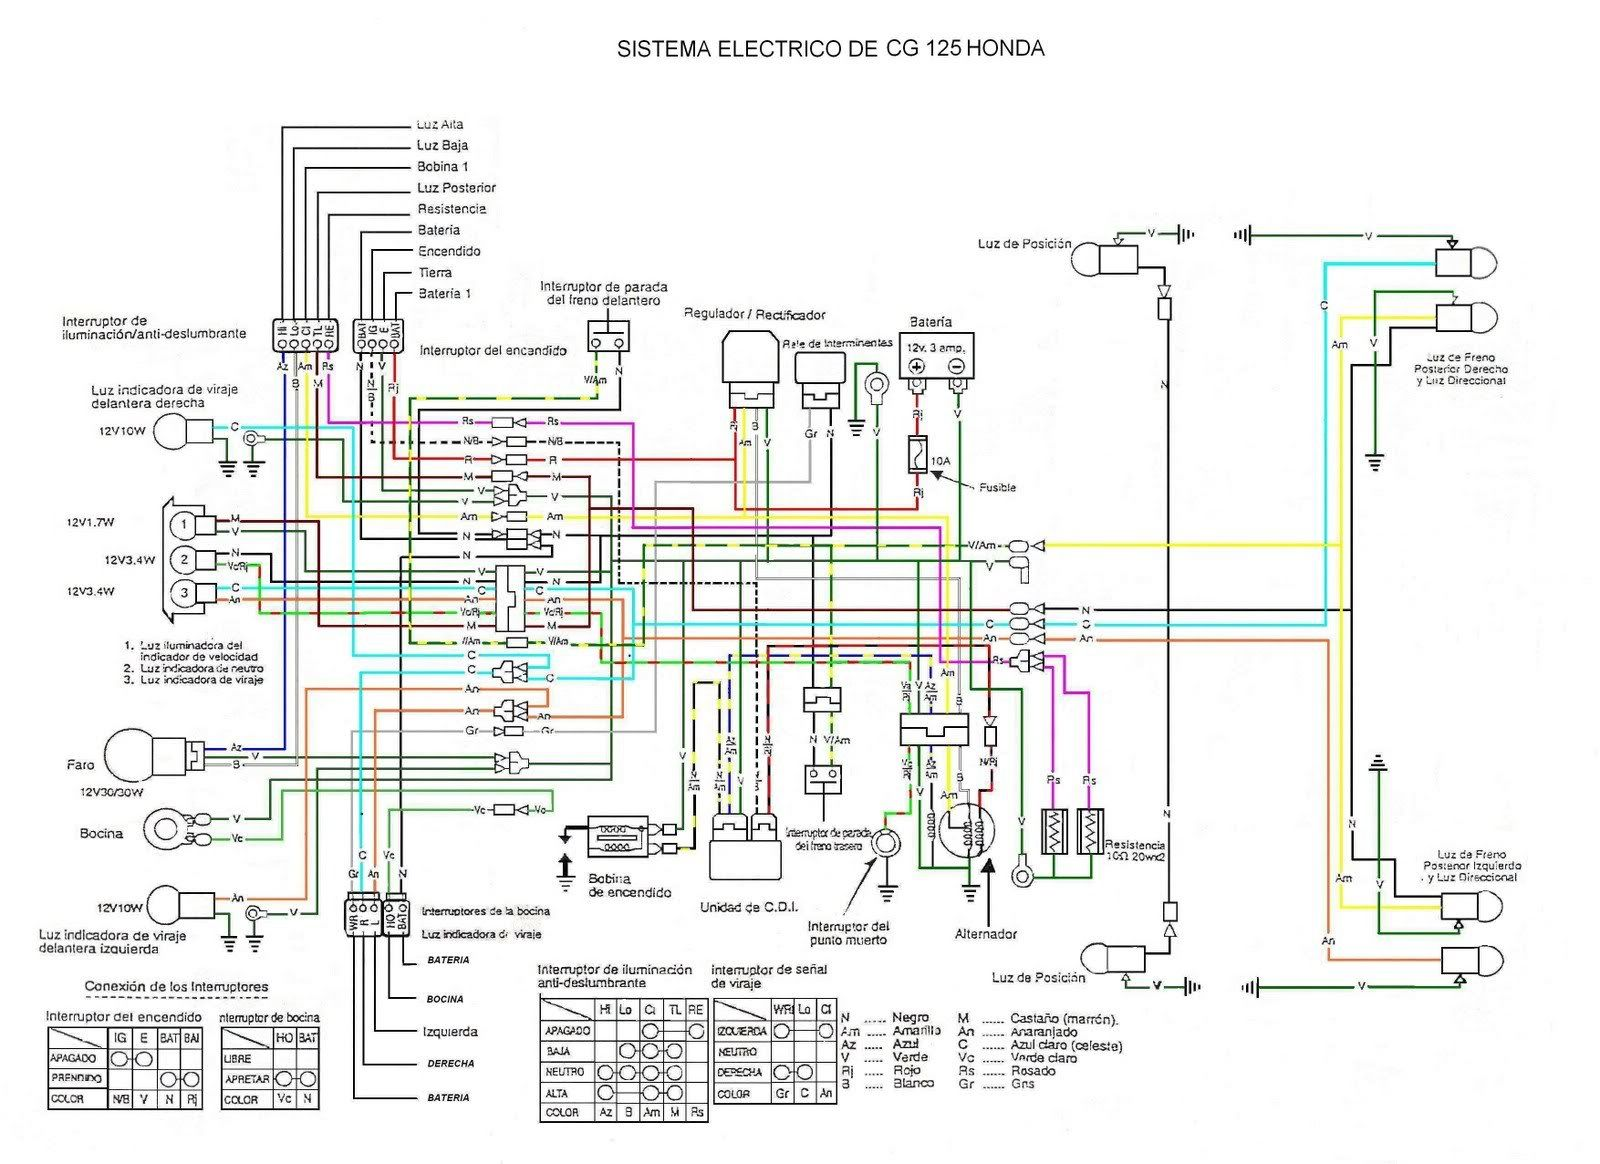 Hyundai I10 Ecu Wiring Diagram Kohler Engine Ignition Diagrama O Sistema Eléctrico De Motos Chinas Wason